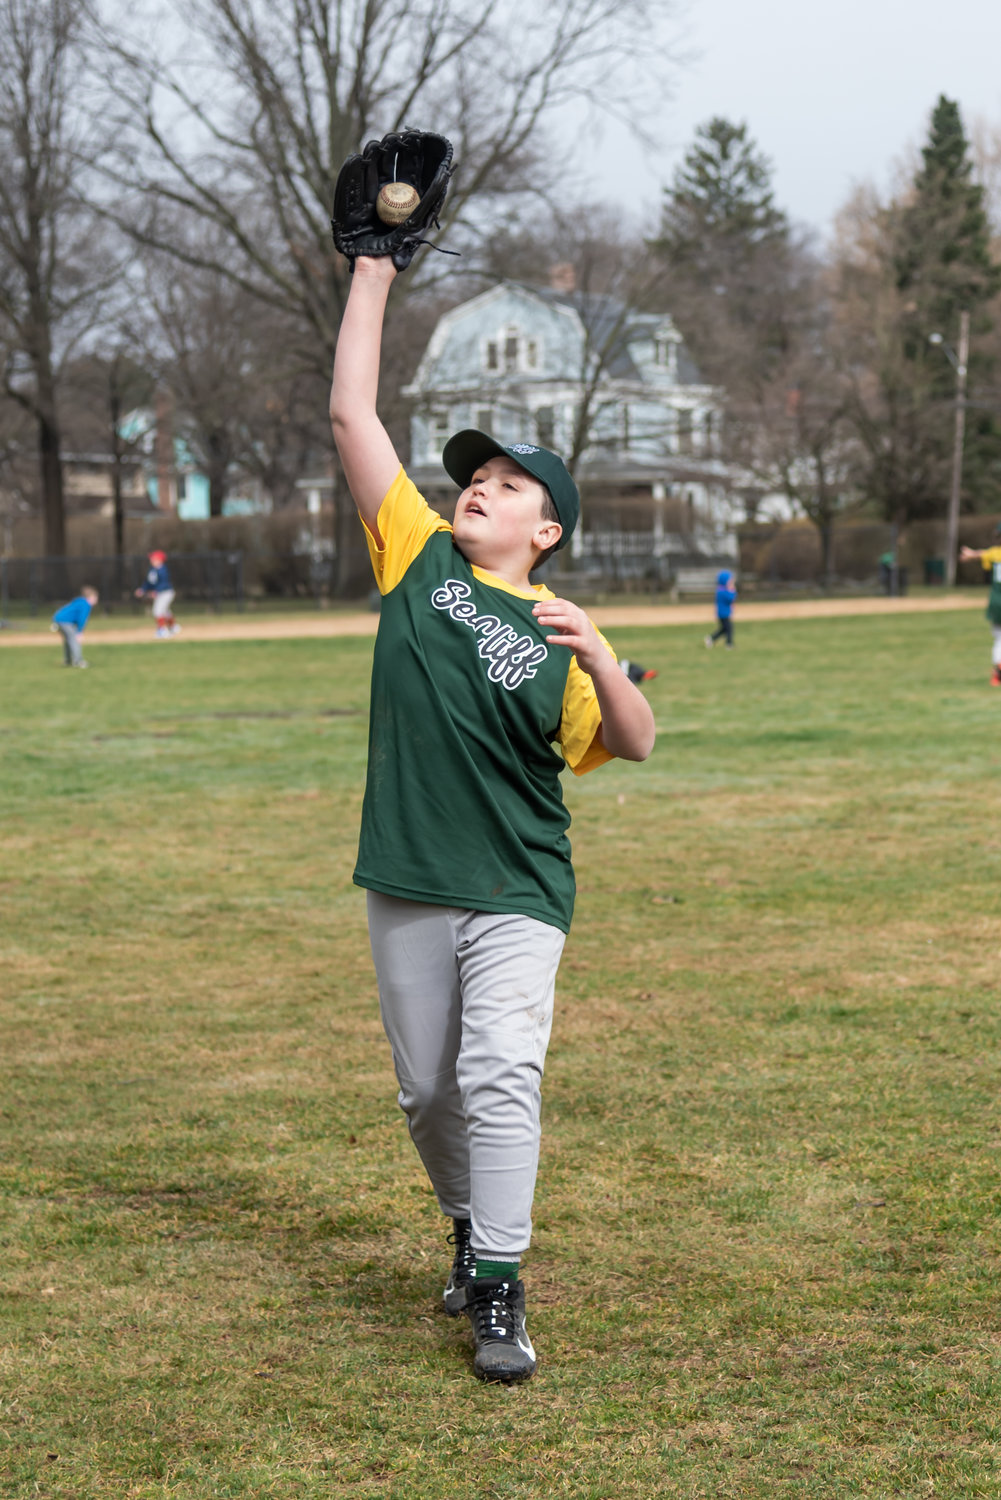 Jack Martin, 10, was skillful in catching a fly ball while practicing before the first game of the season.